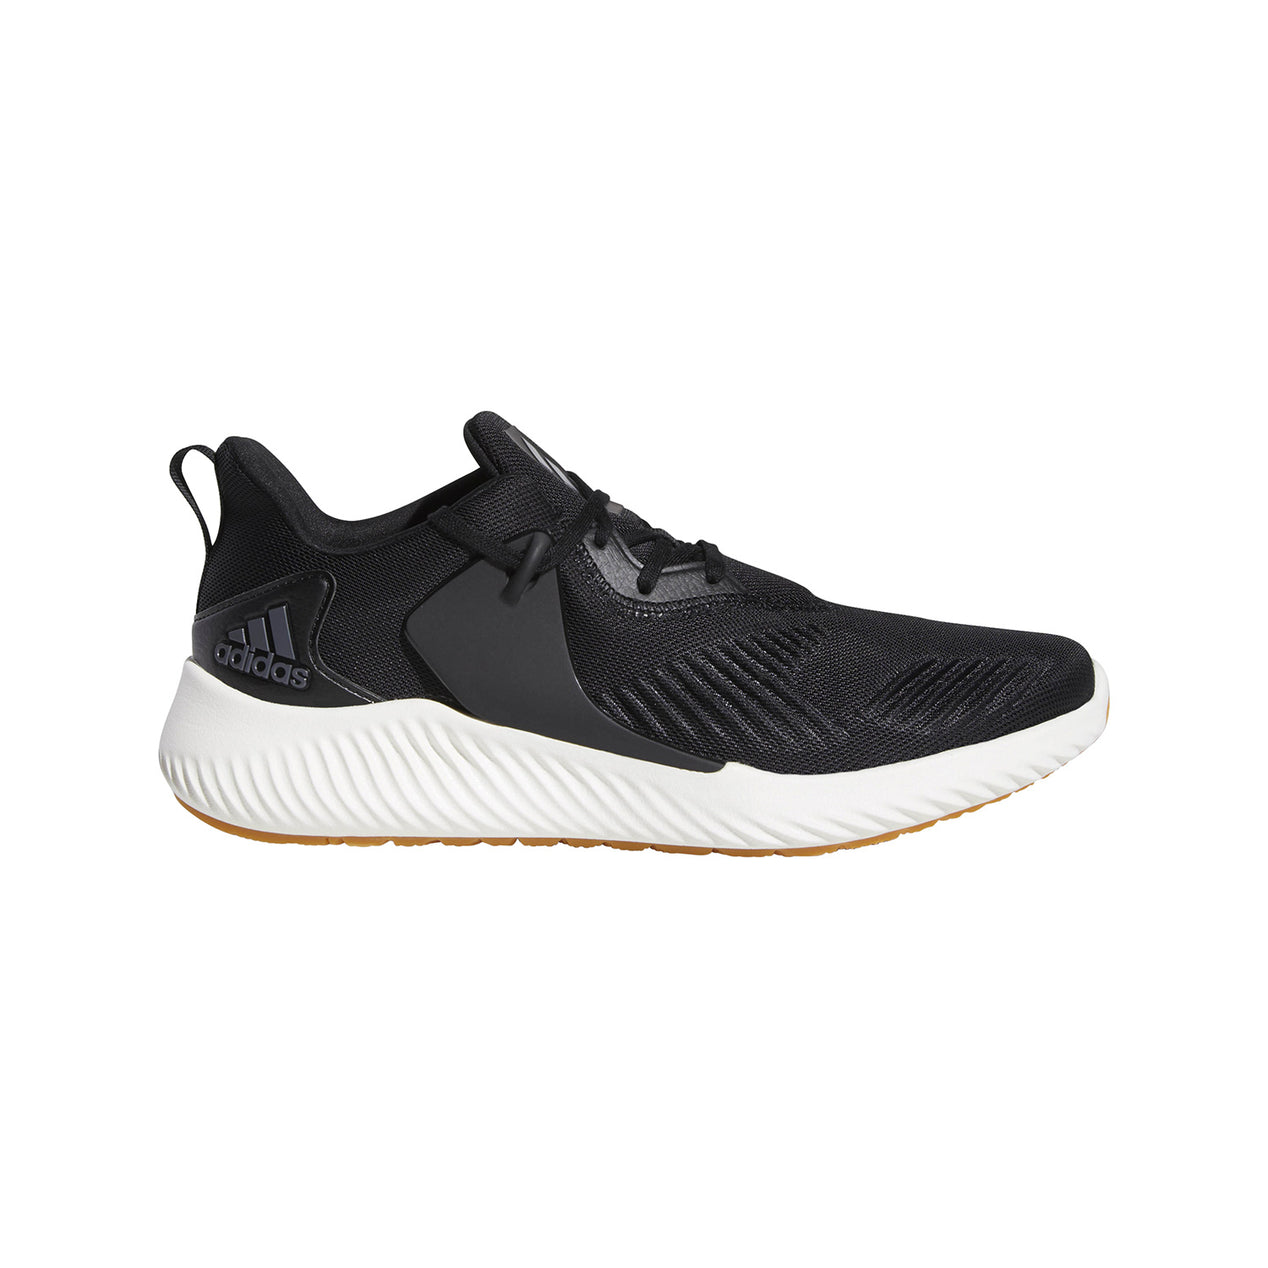 01a3e7bdb Adidas Alphabounce Rc 2 Training Shoes - Men s